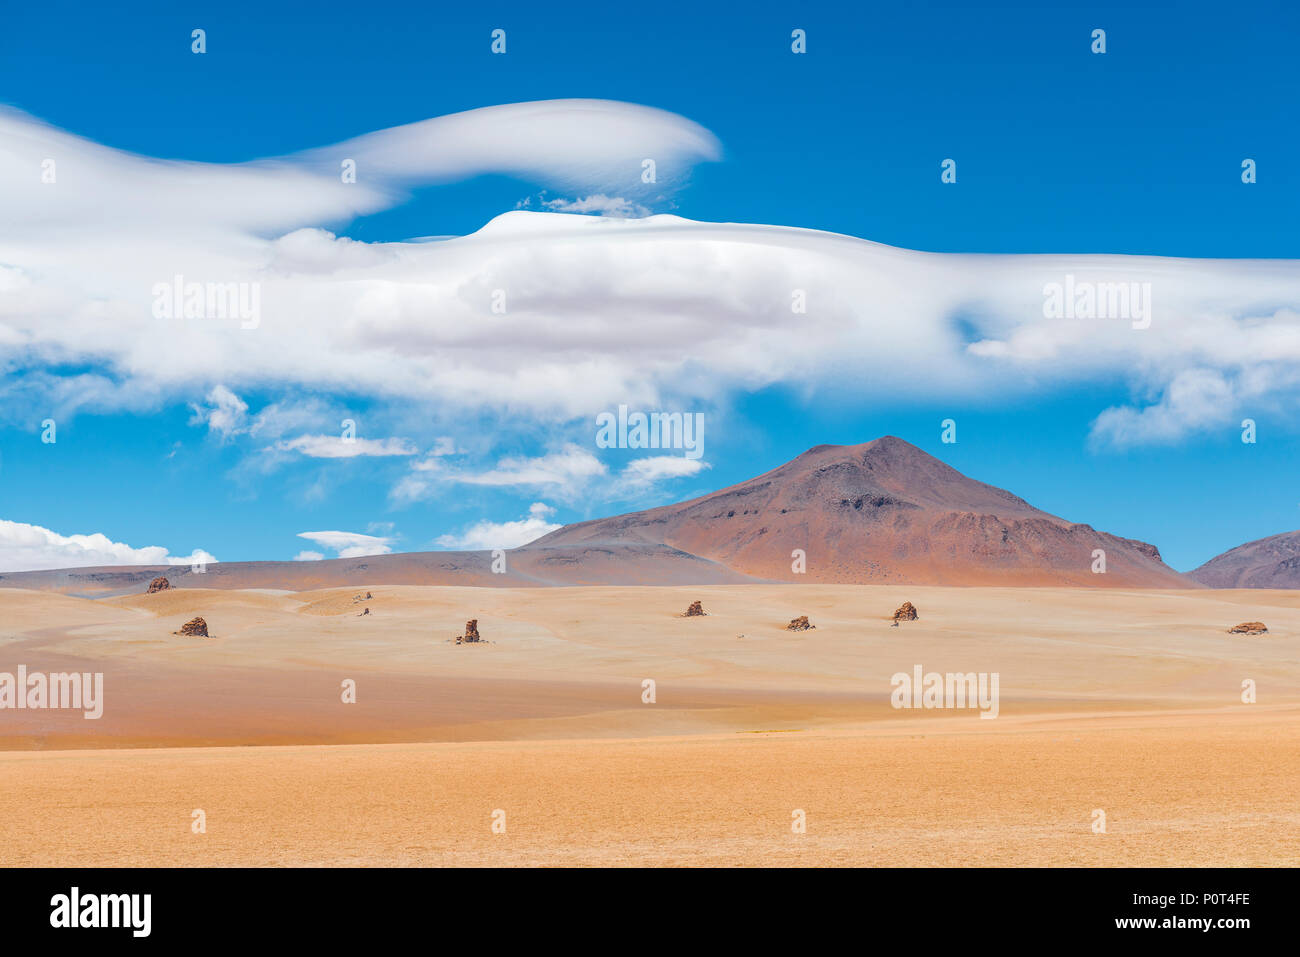 The magnificent Dali Desert near the Uyuni Salt Flat (Salar de Uyuni) with rock formations that could have been drawn by the master himself, Bolivia. - Stock Image